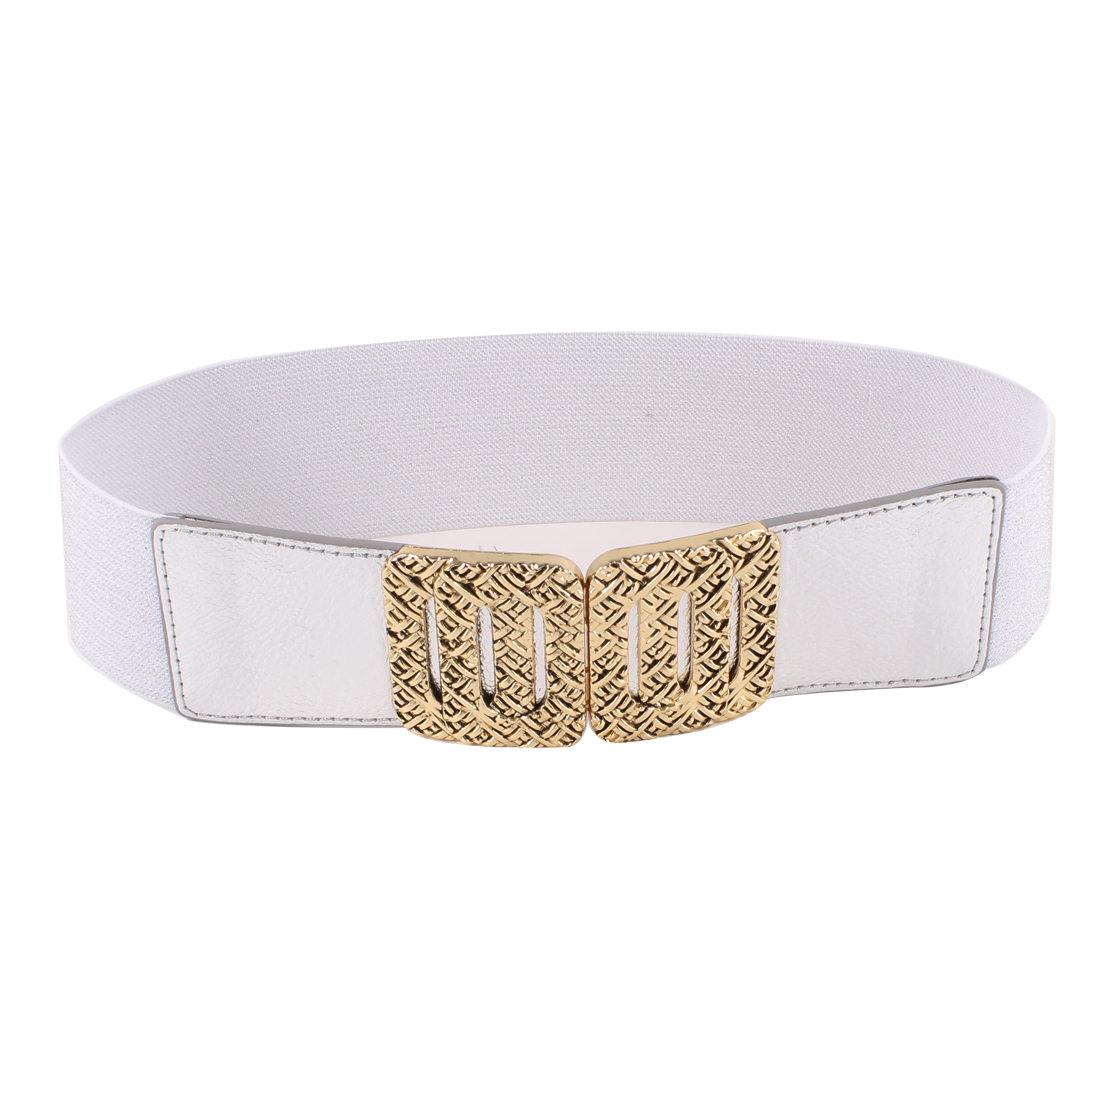 Woman Metal Rectangle Buckle Shiny Tinsel Waistband Cinch Waist Belt Silver Tone